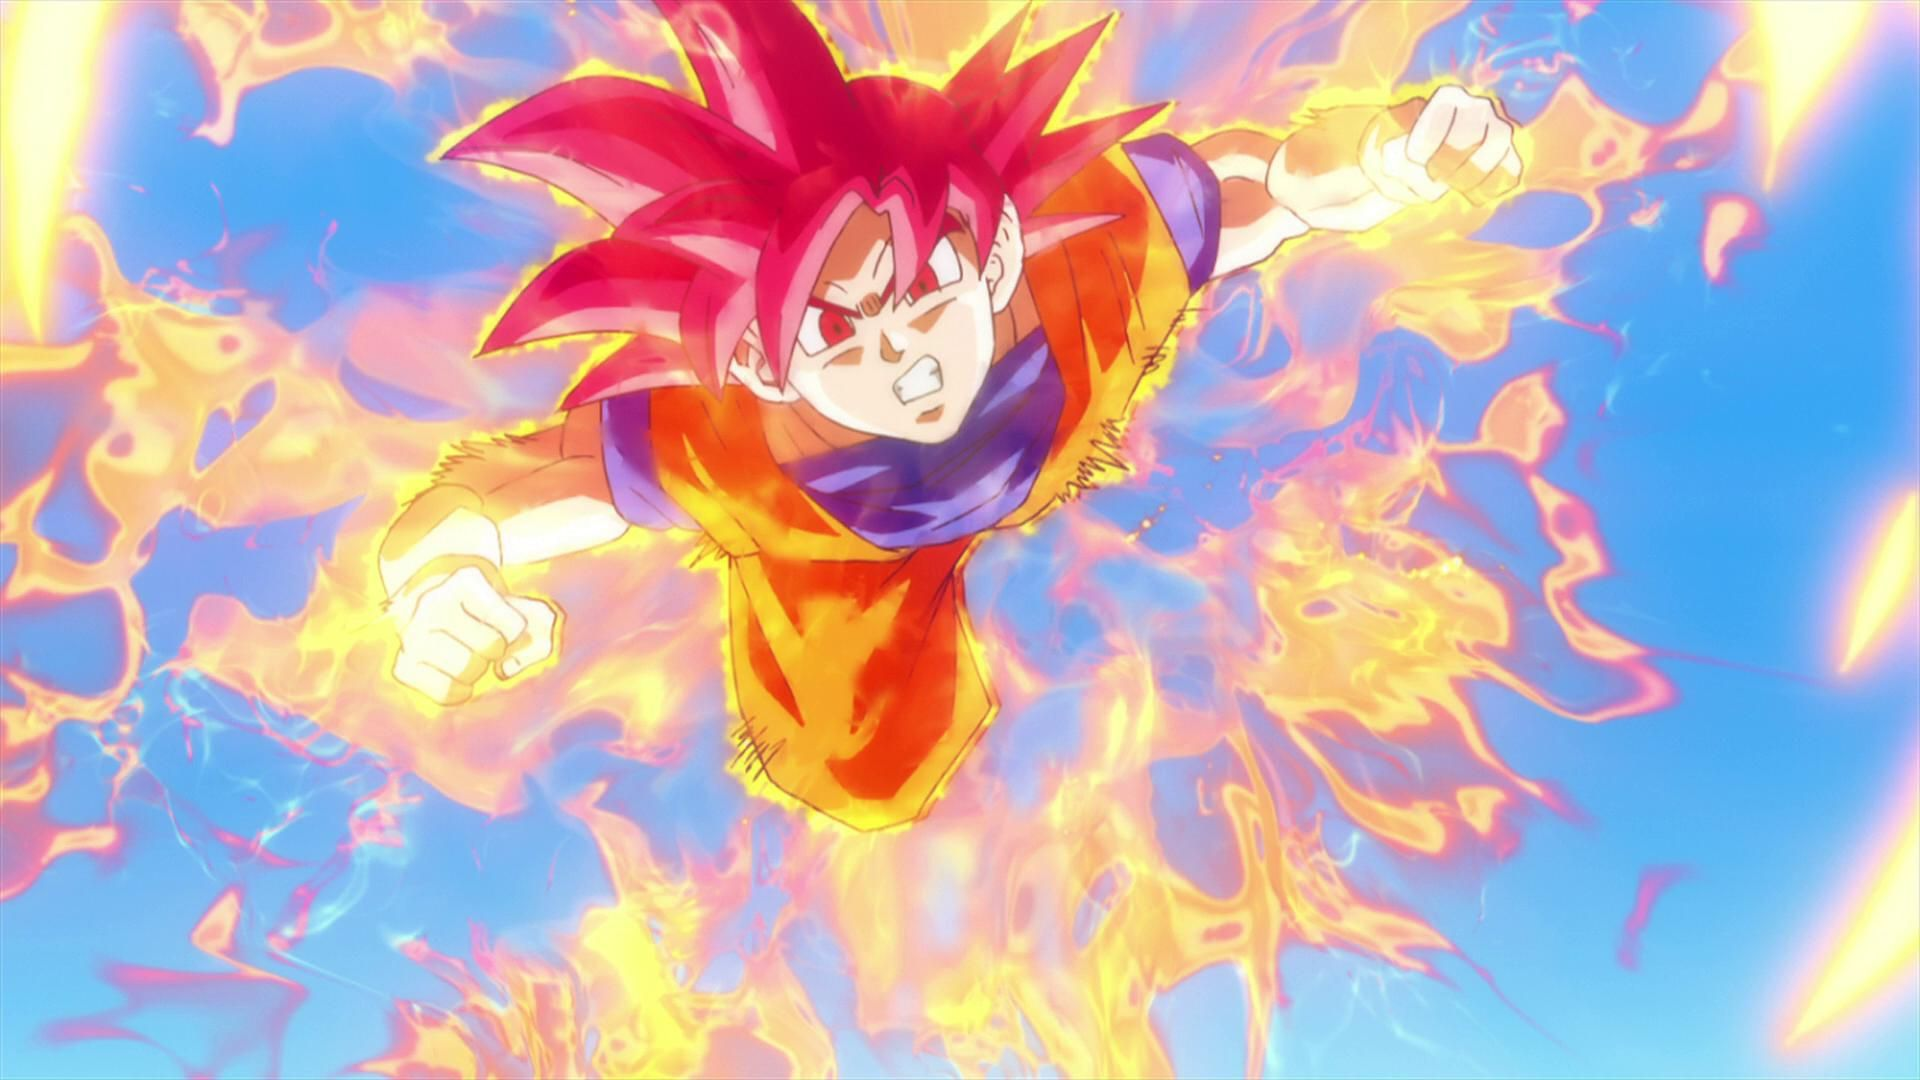 Goku Super Saiyan God 1080p Wallpaper | Dragon Ball ...